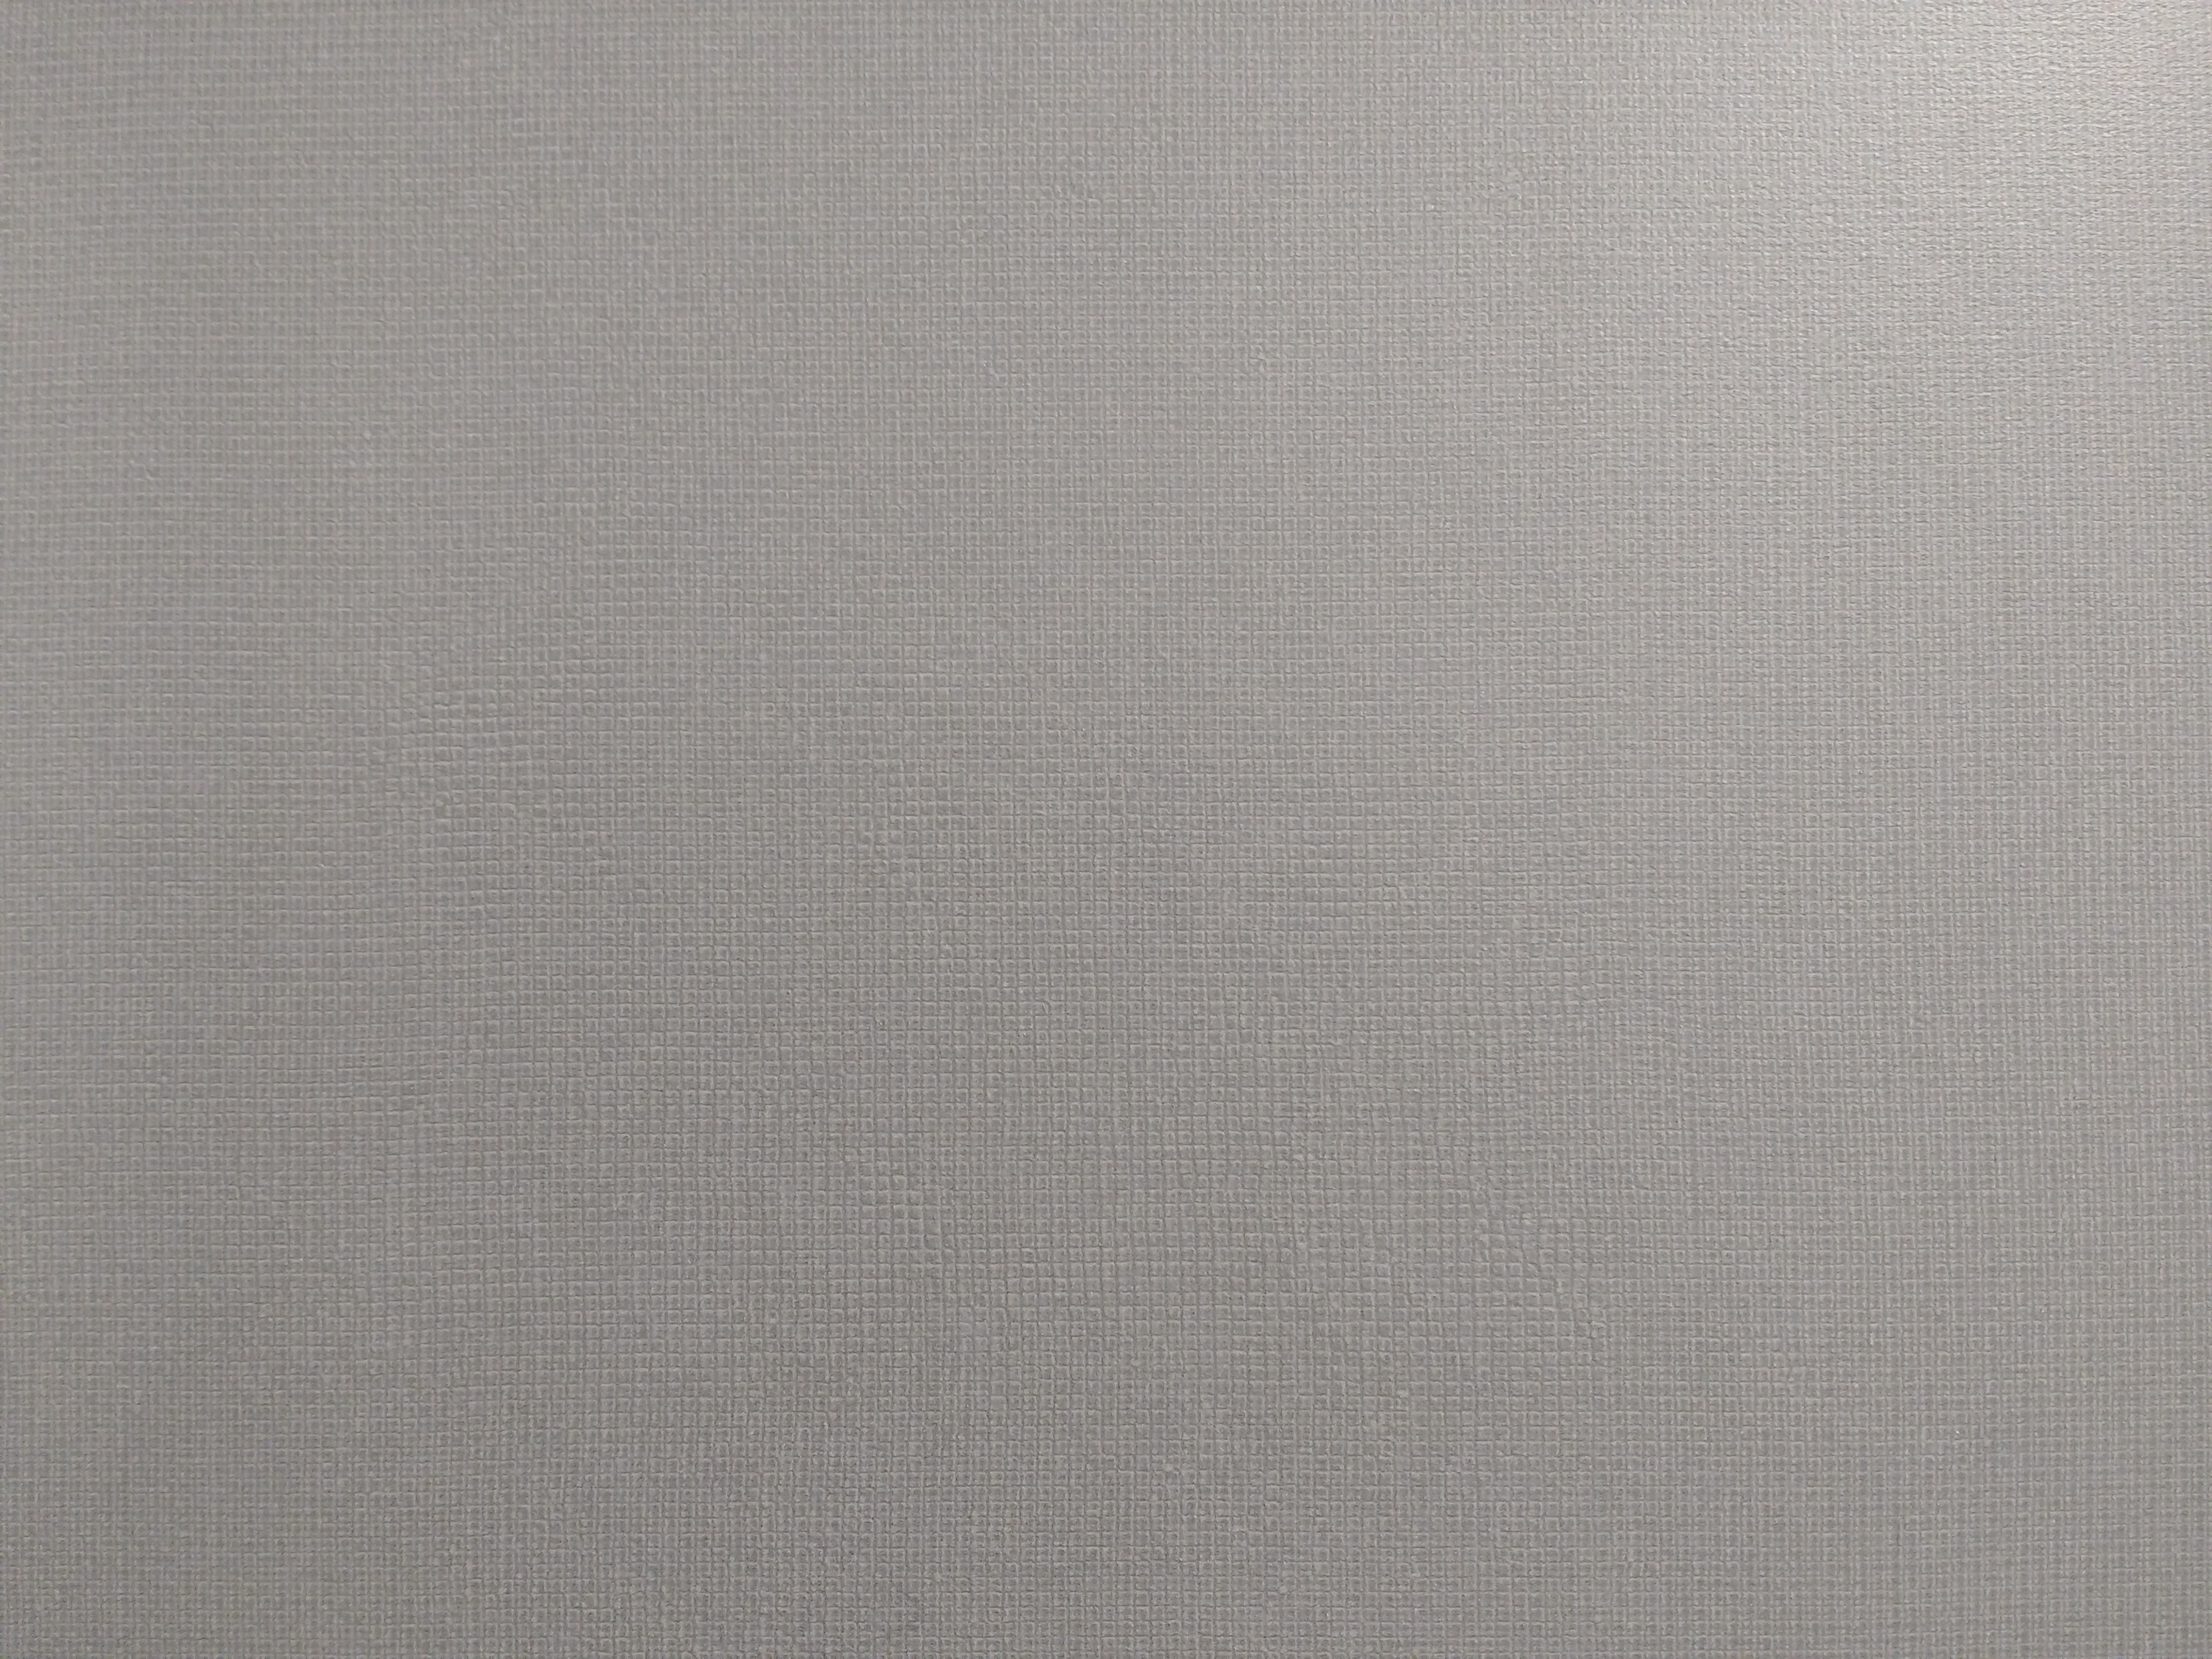 Gray Plastic With Square Pattern Texture Picture Free